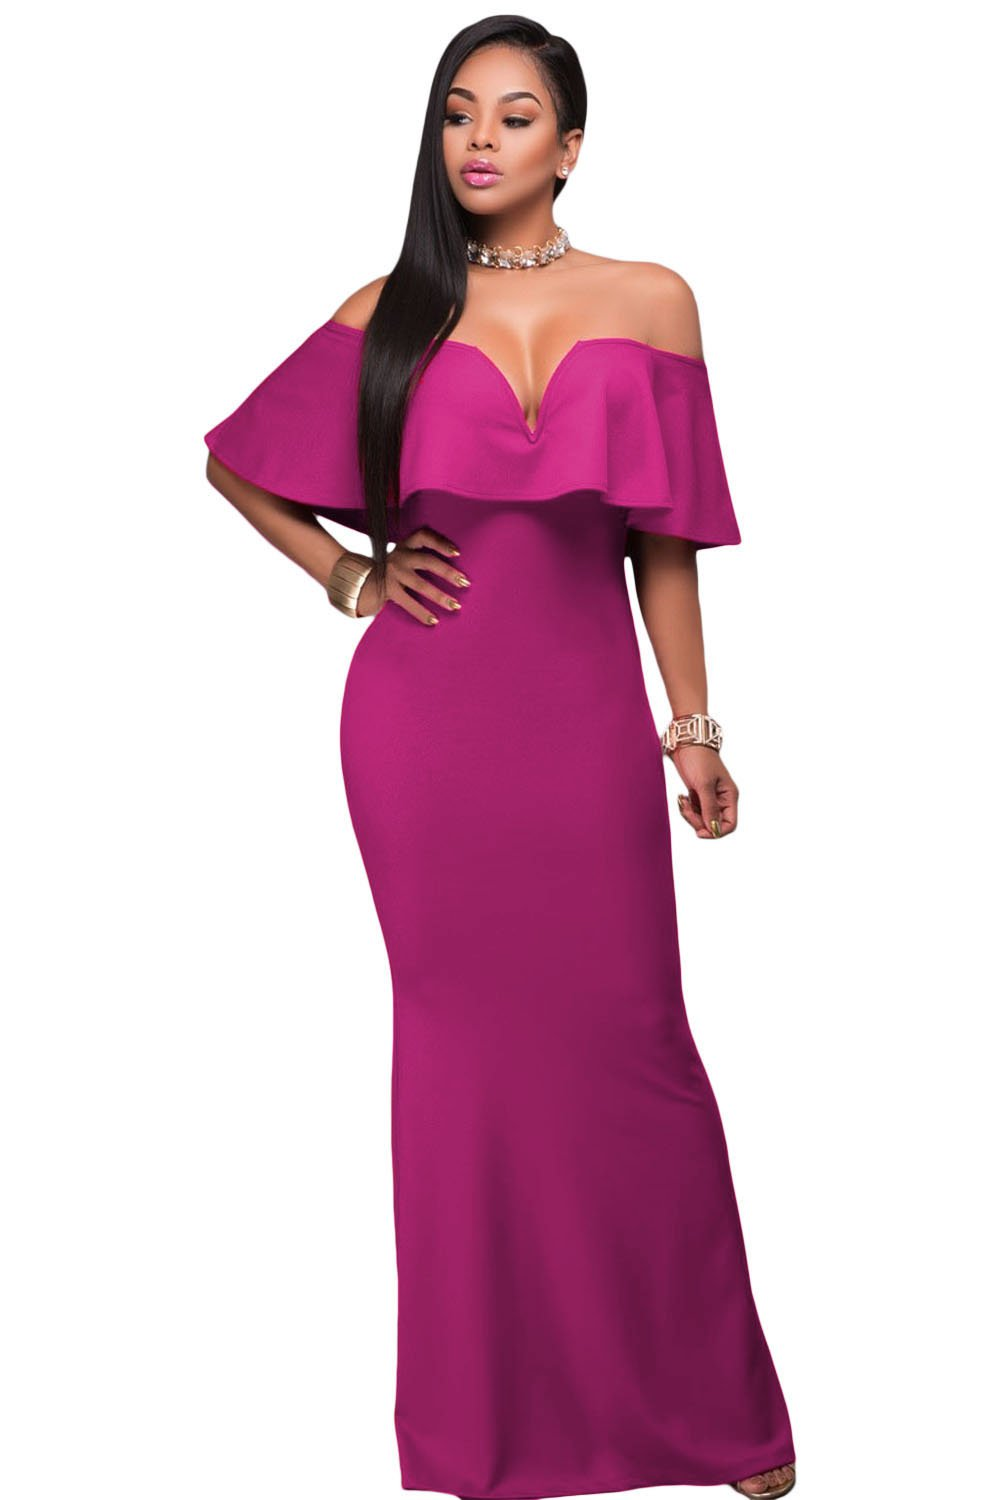 Rosy Ruffle Off Shoulder Maxi Party Dress